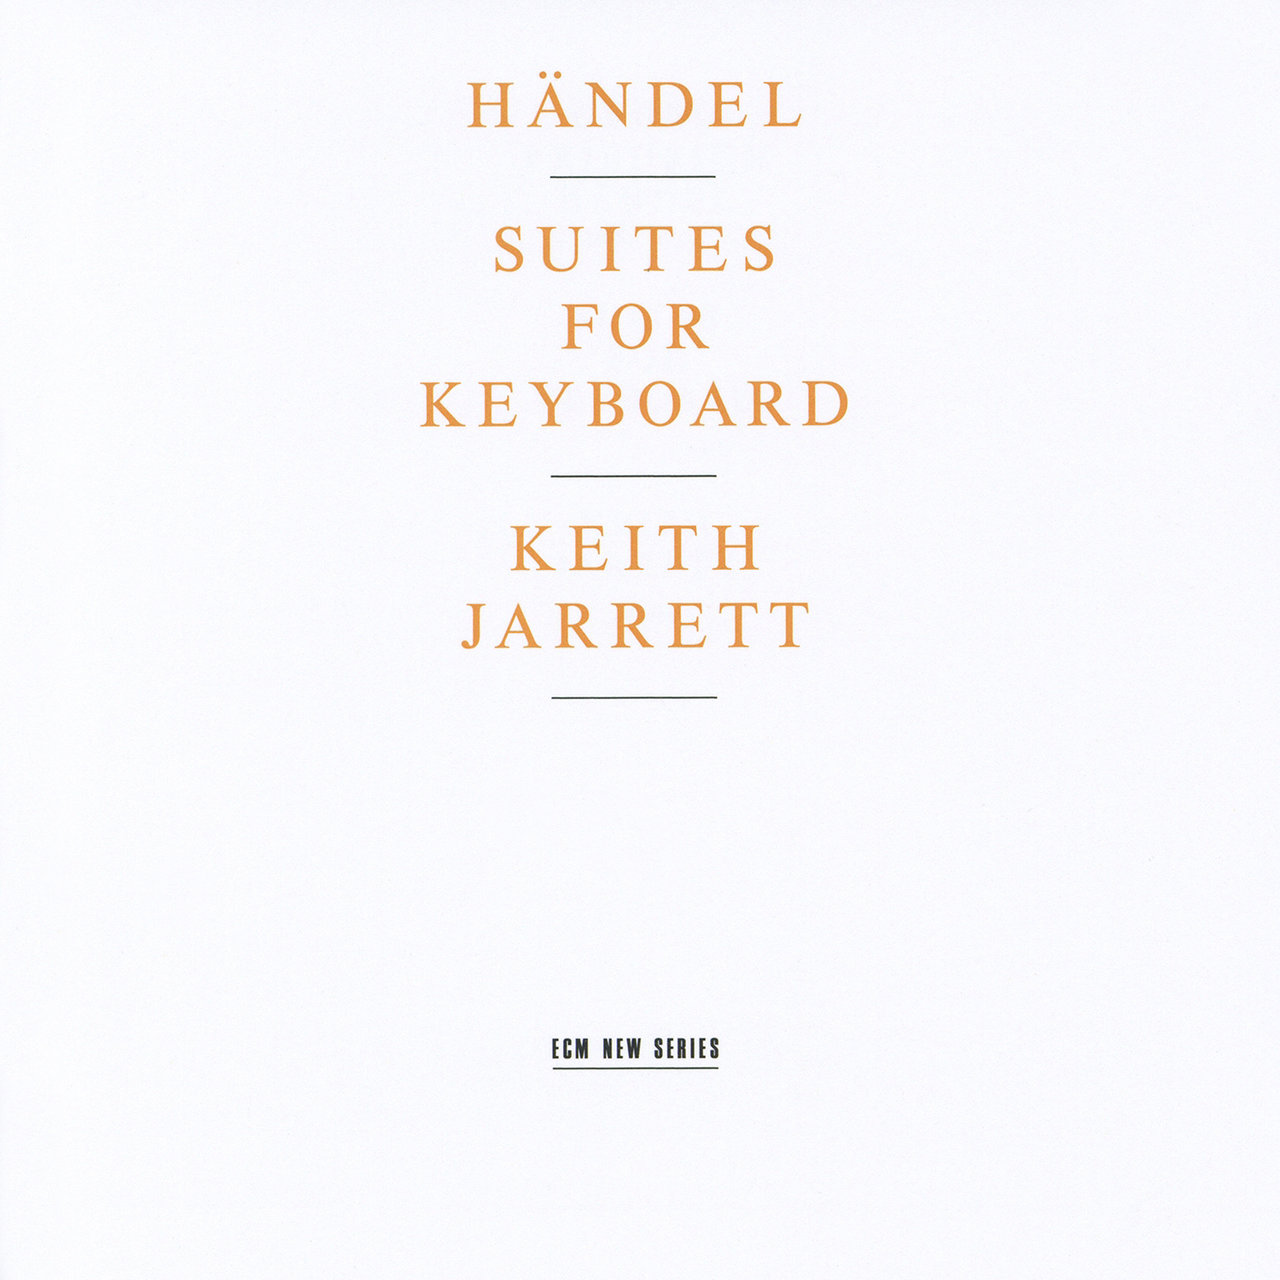 Handel: Suites For Keyboard